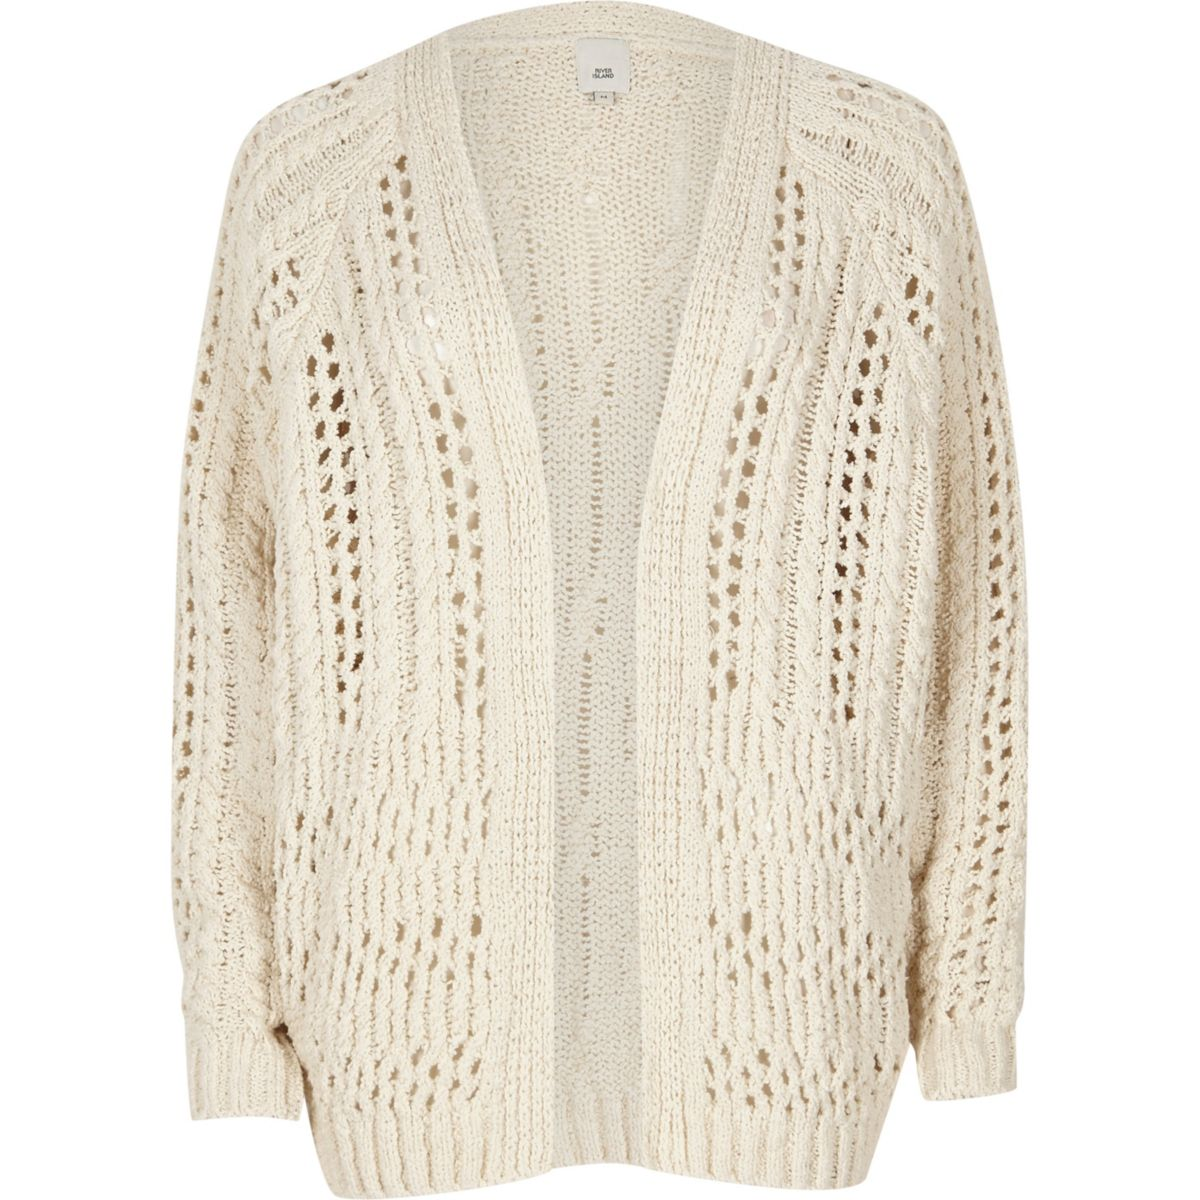 Light cream open knit cardigan